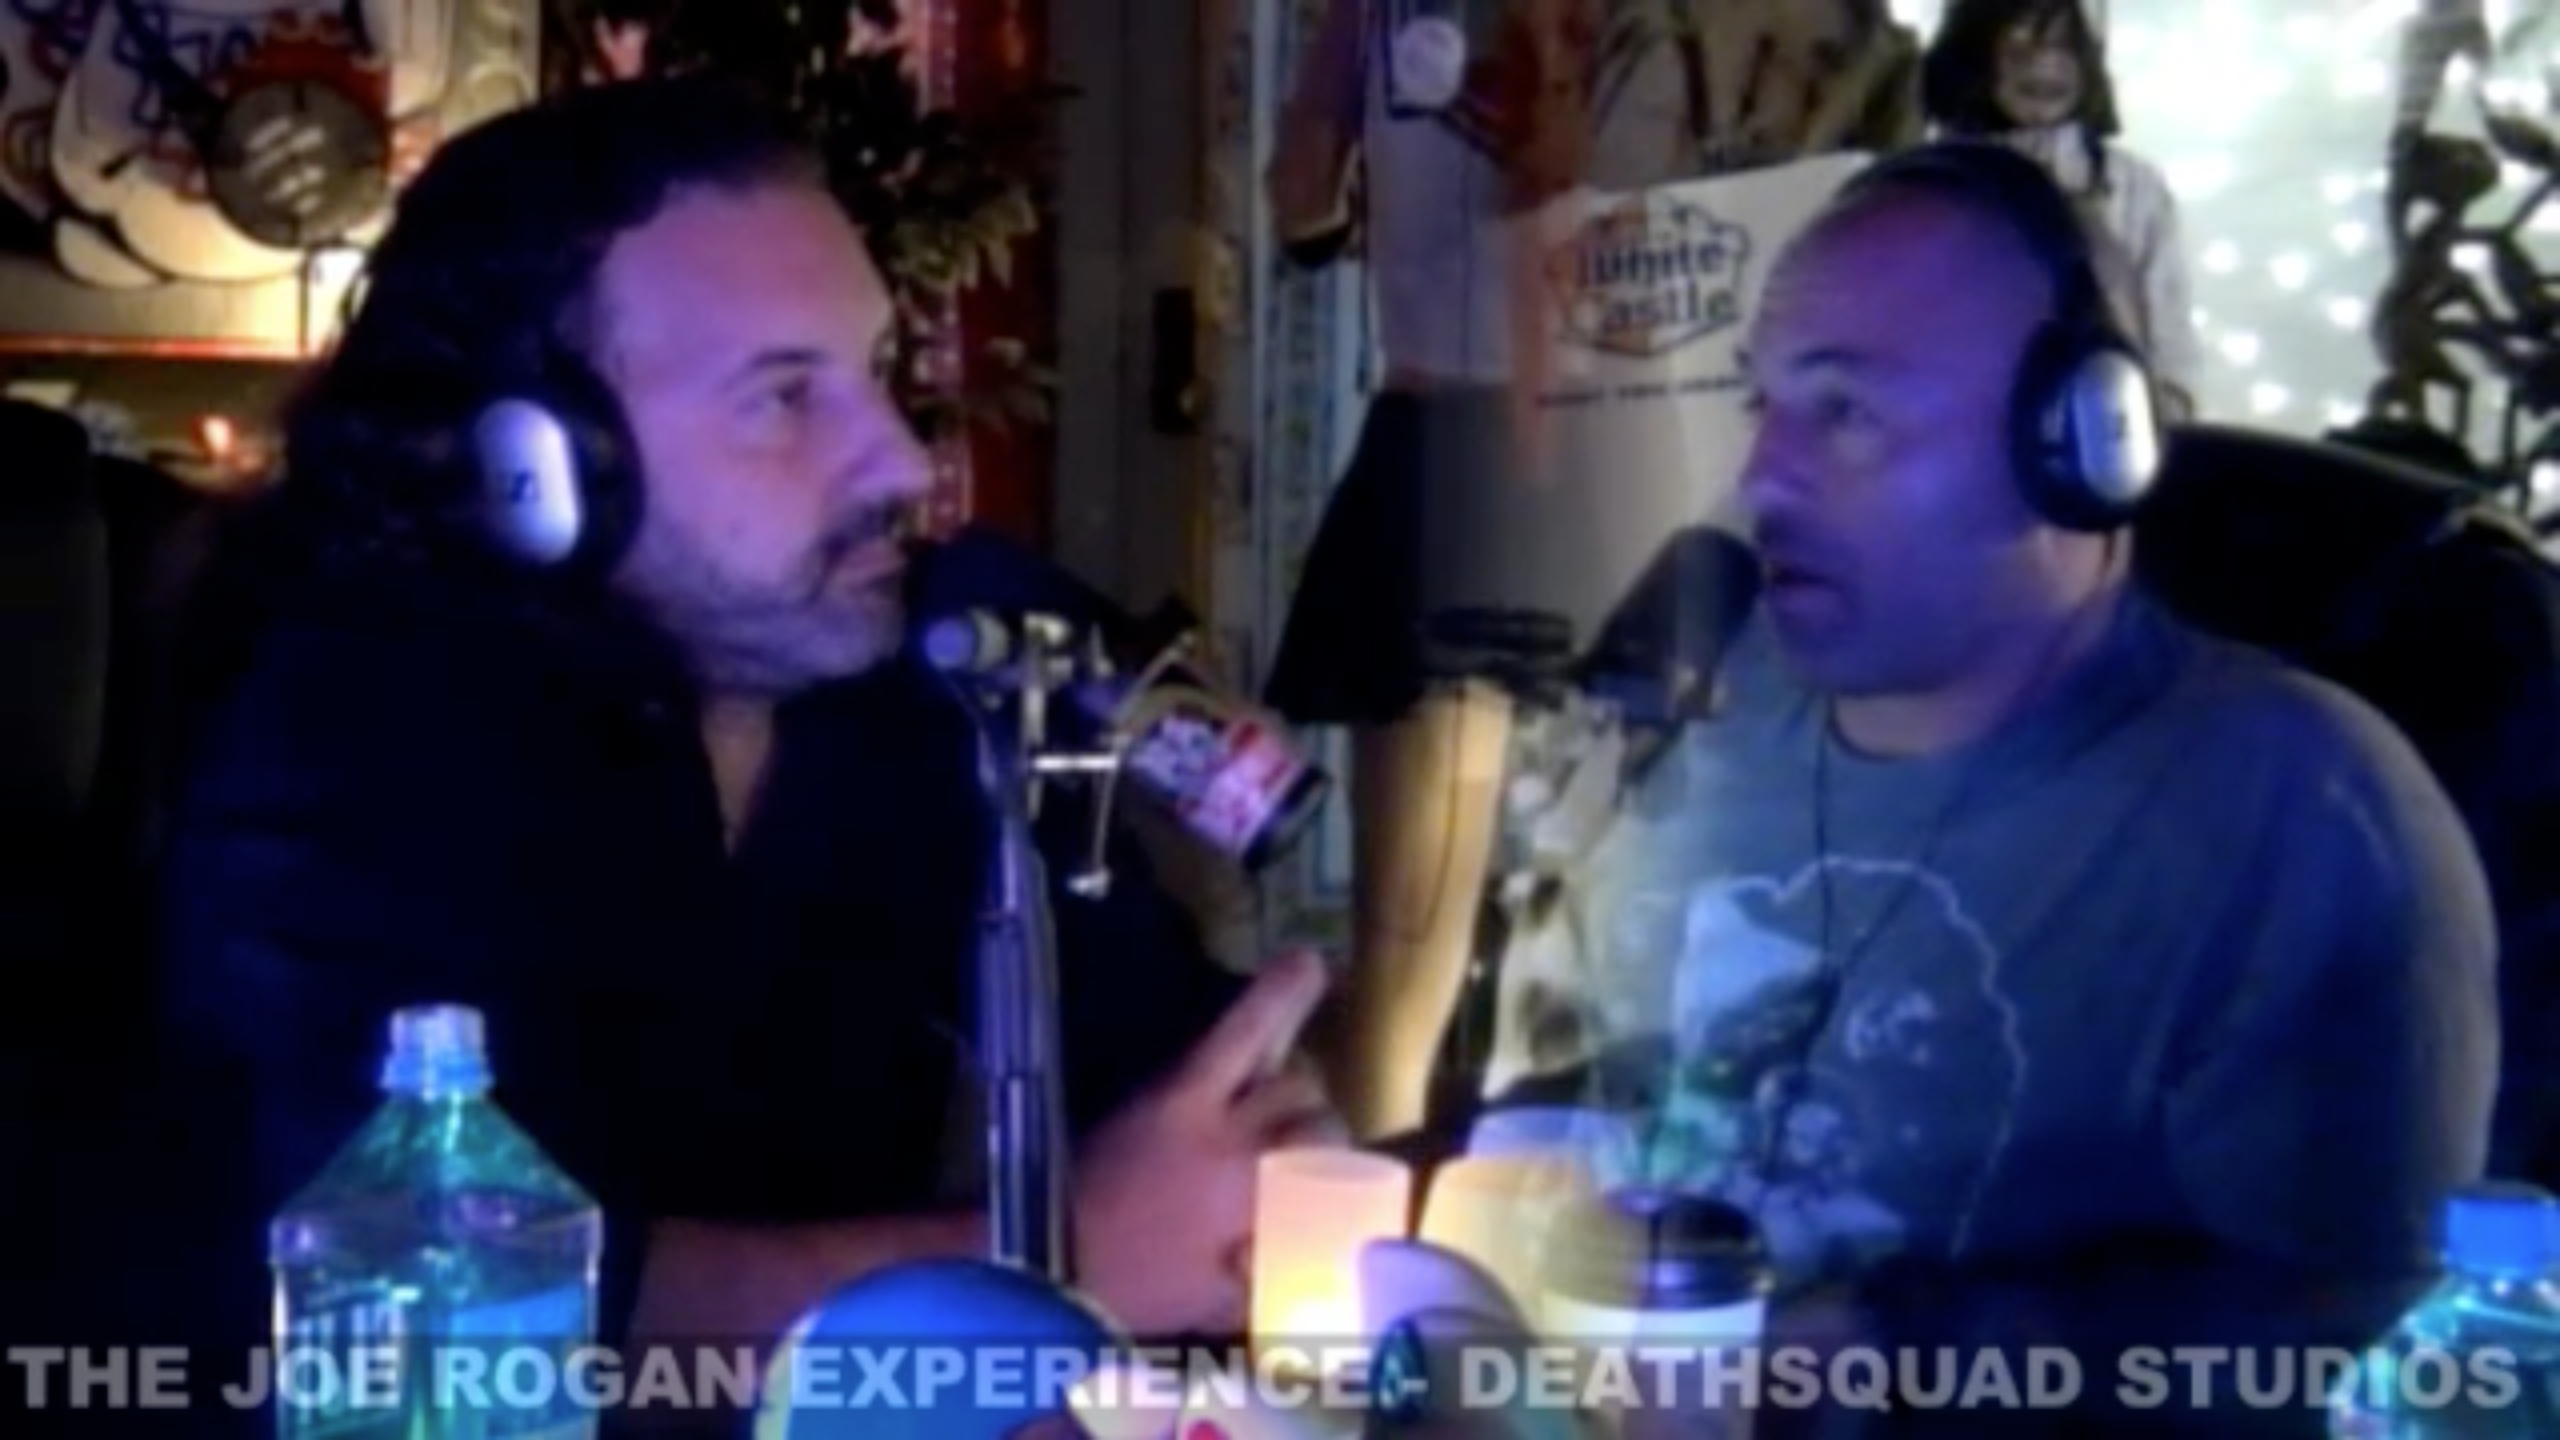 The Joe Rogan Experience #280 - Philip Coppens, Brian Redban